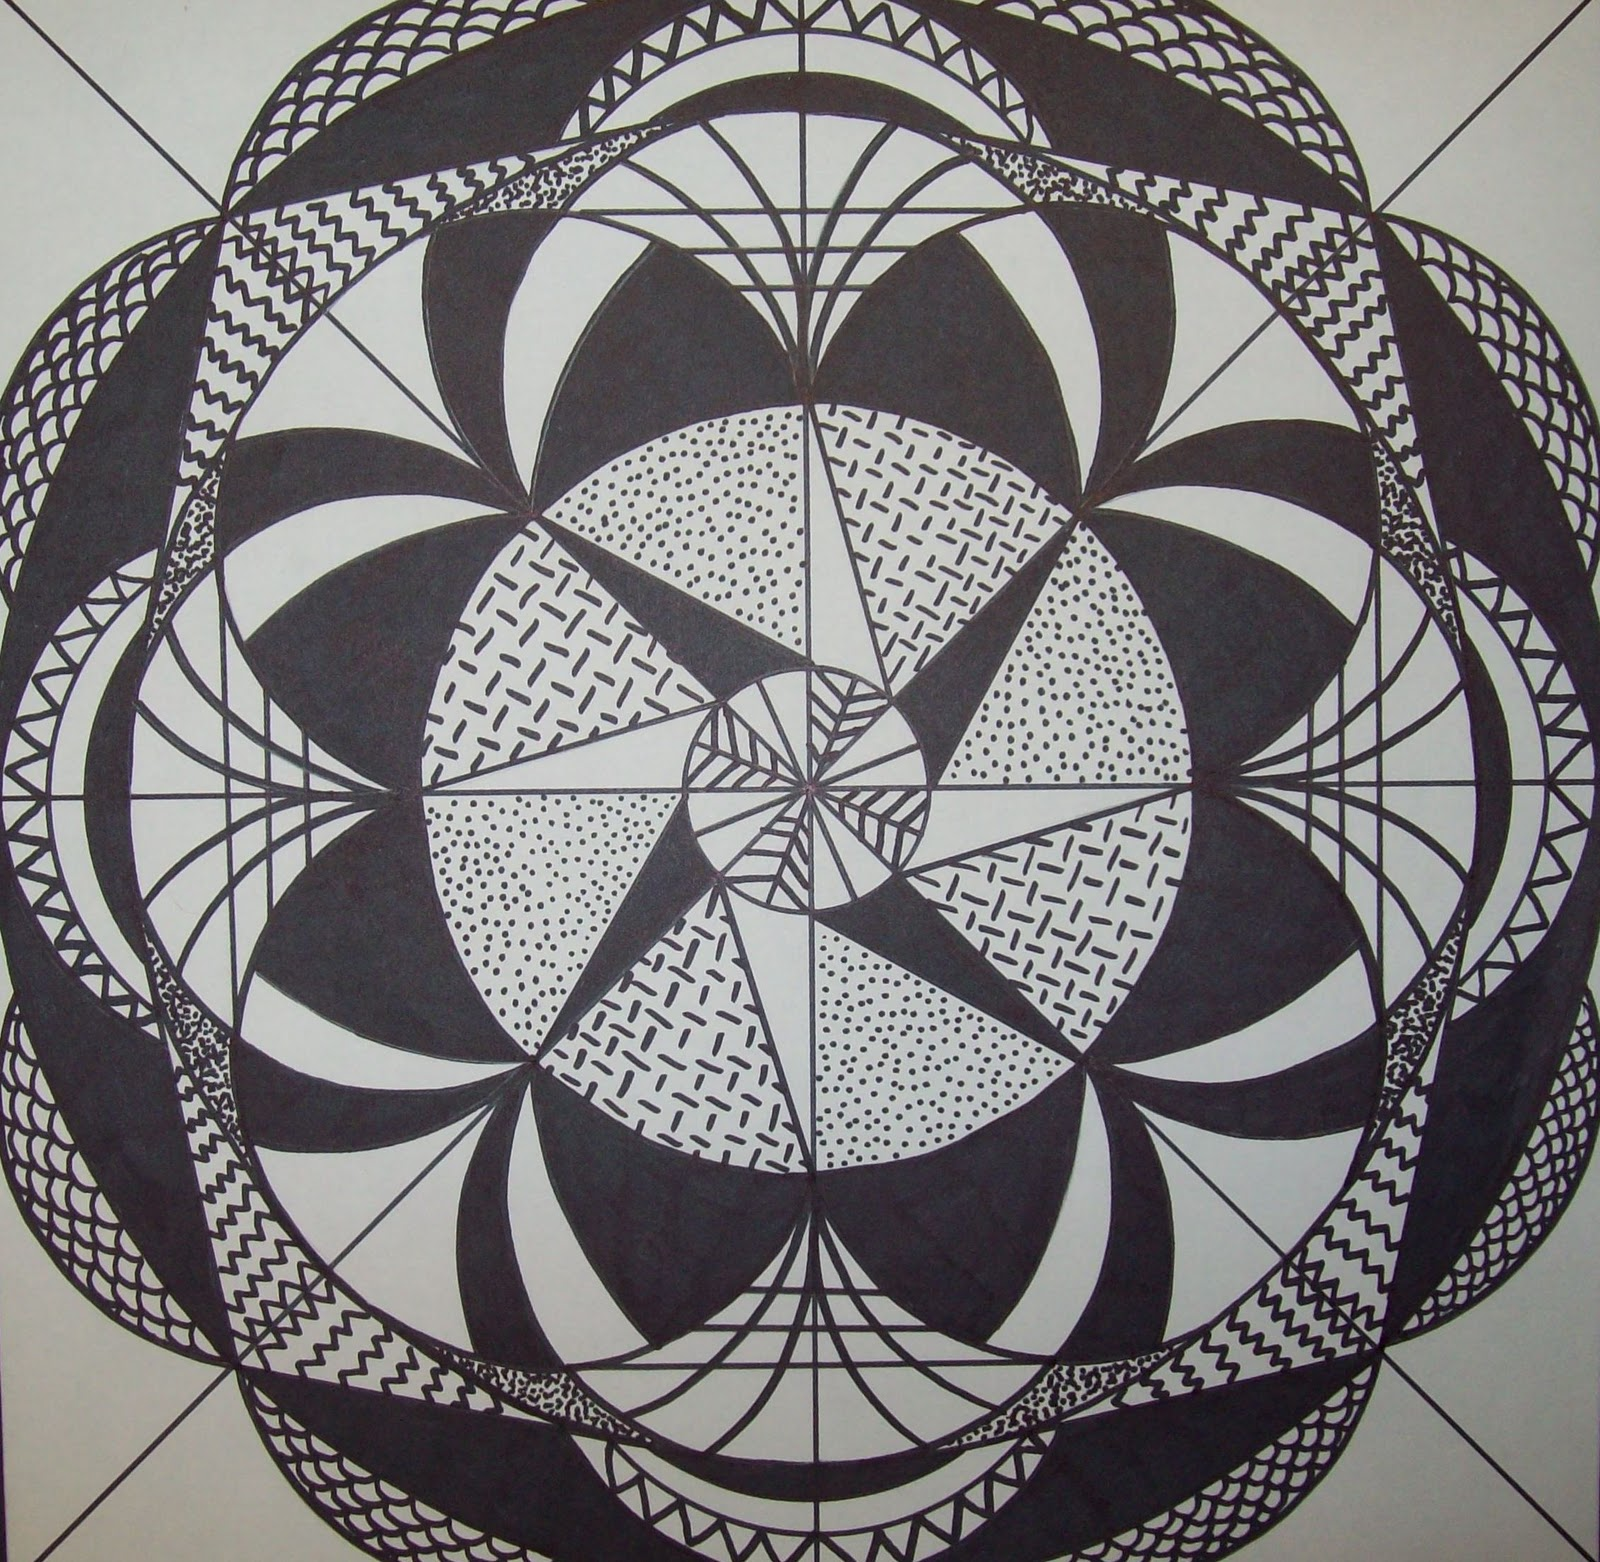 Radial Design Art : My artful nest i heart radial symmetry